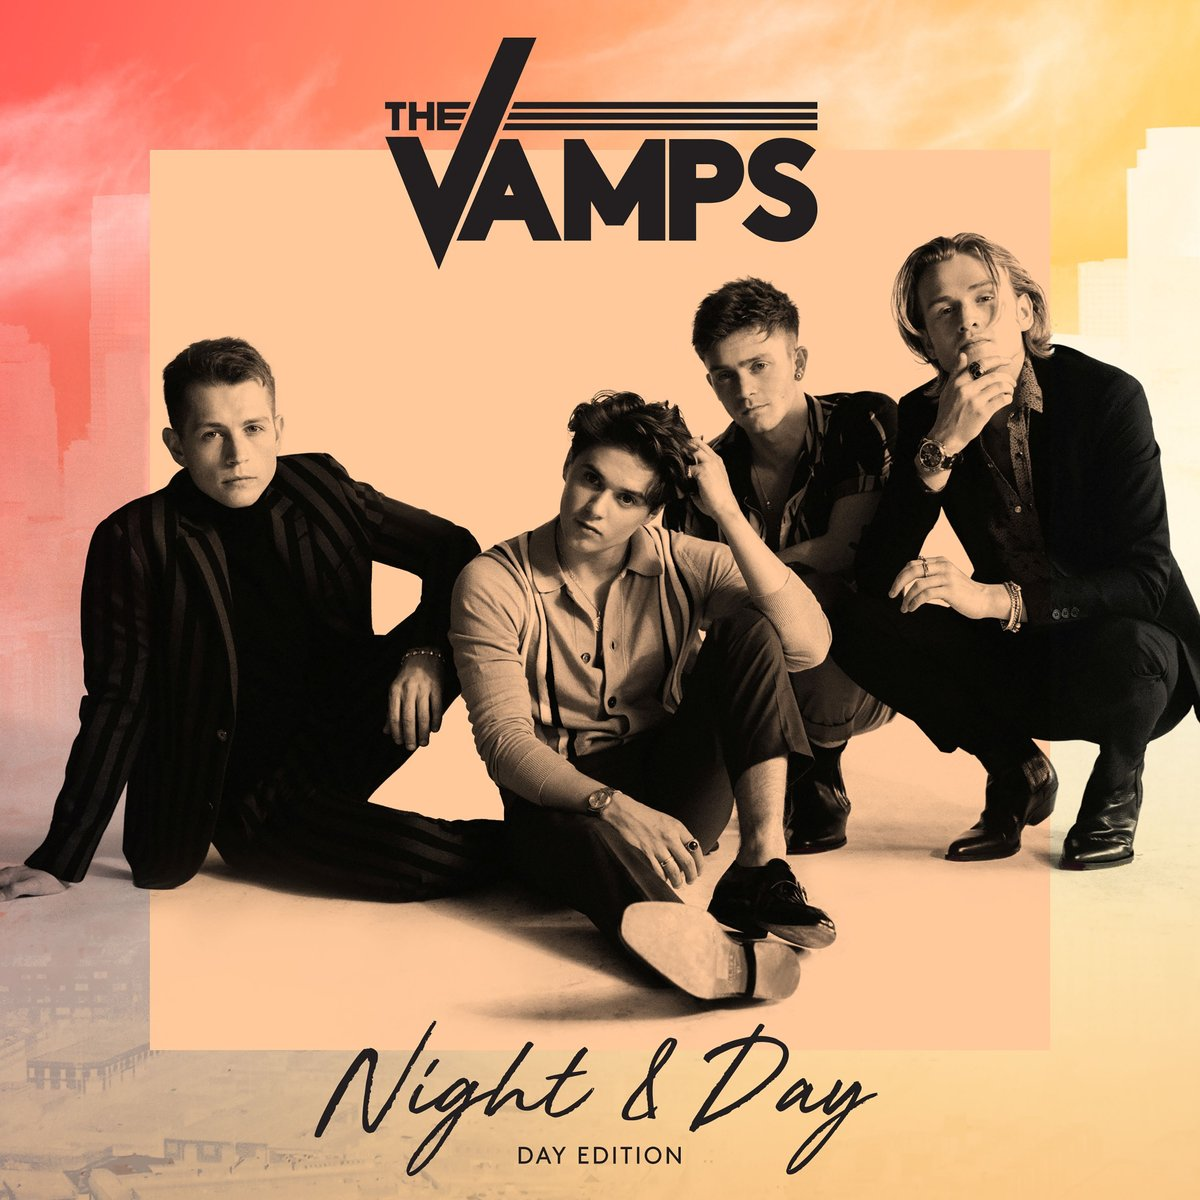 Podoba Ci się nowy album The Vamps #VampsNewAlbum?  #RT tak #FAV nie https://t.co/bZzHVQ4ZXq